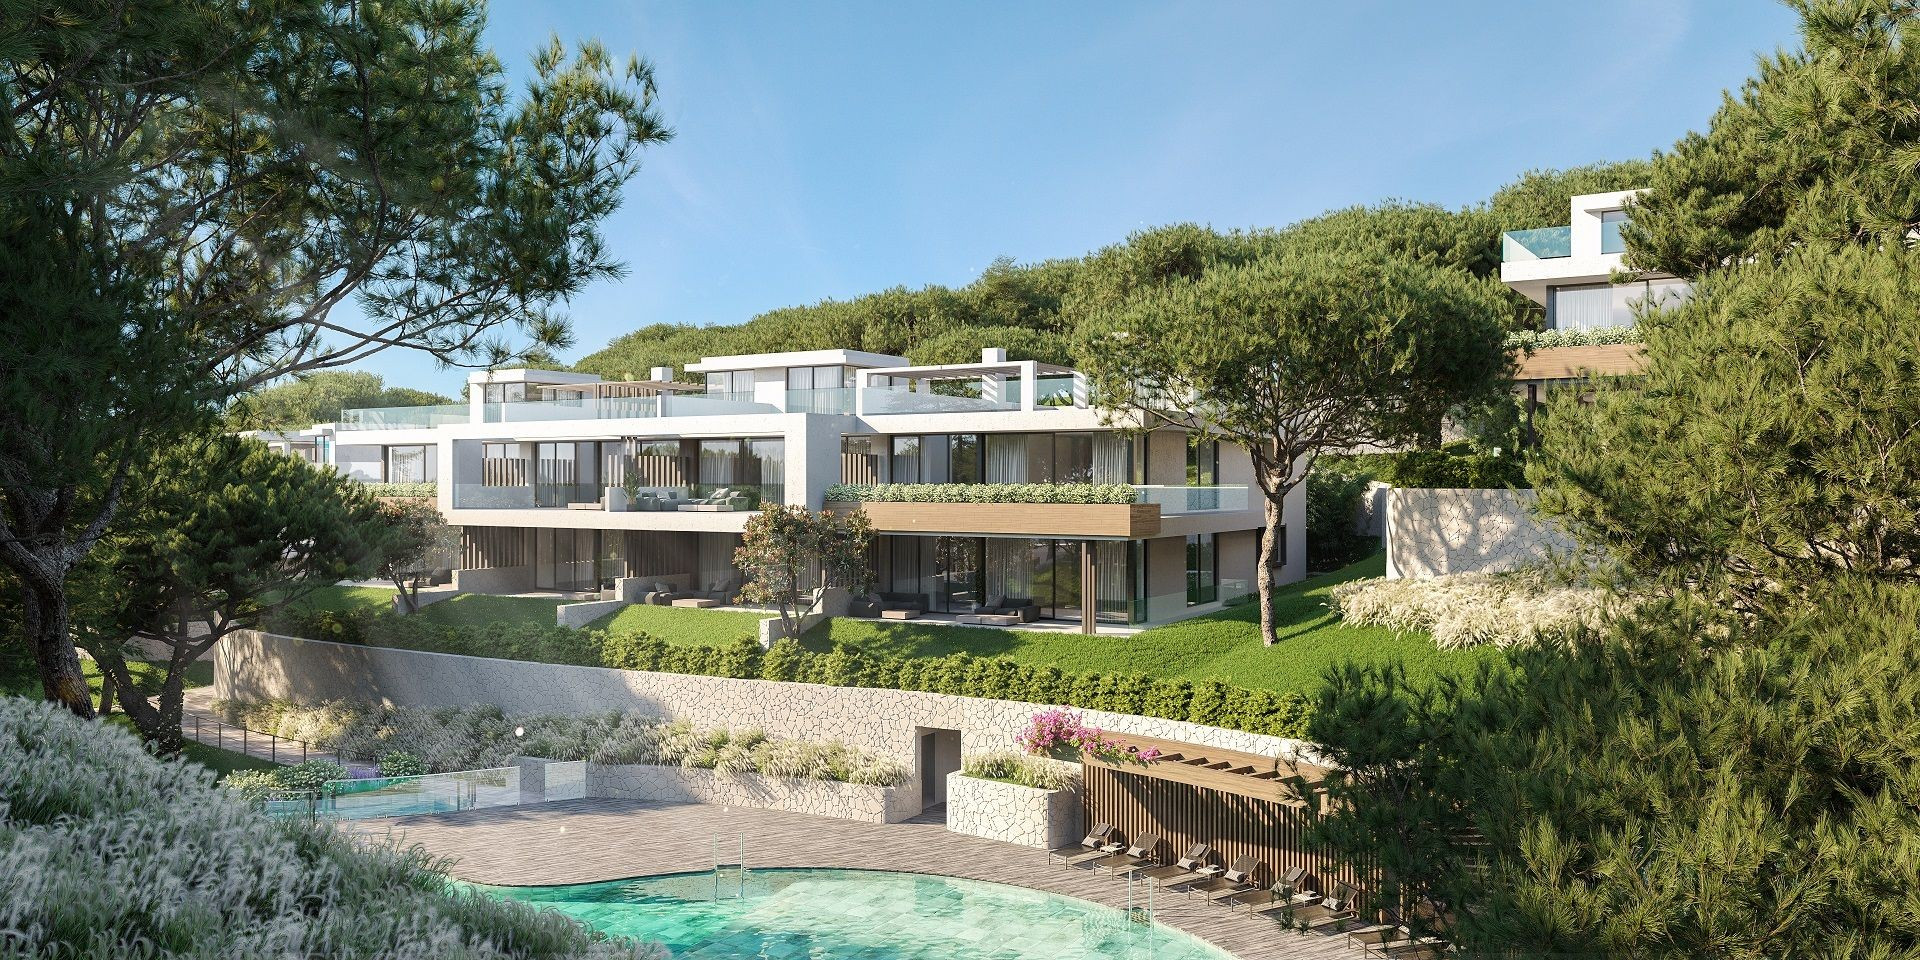 A Boutique Development of Luxury Apartments & Penthouses Nestled in the Pine Trees of Cabopino.